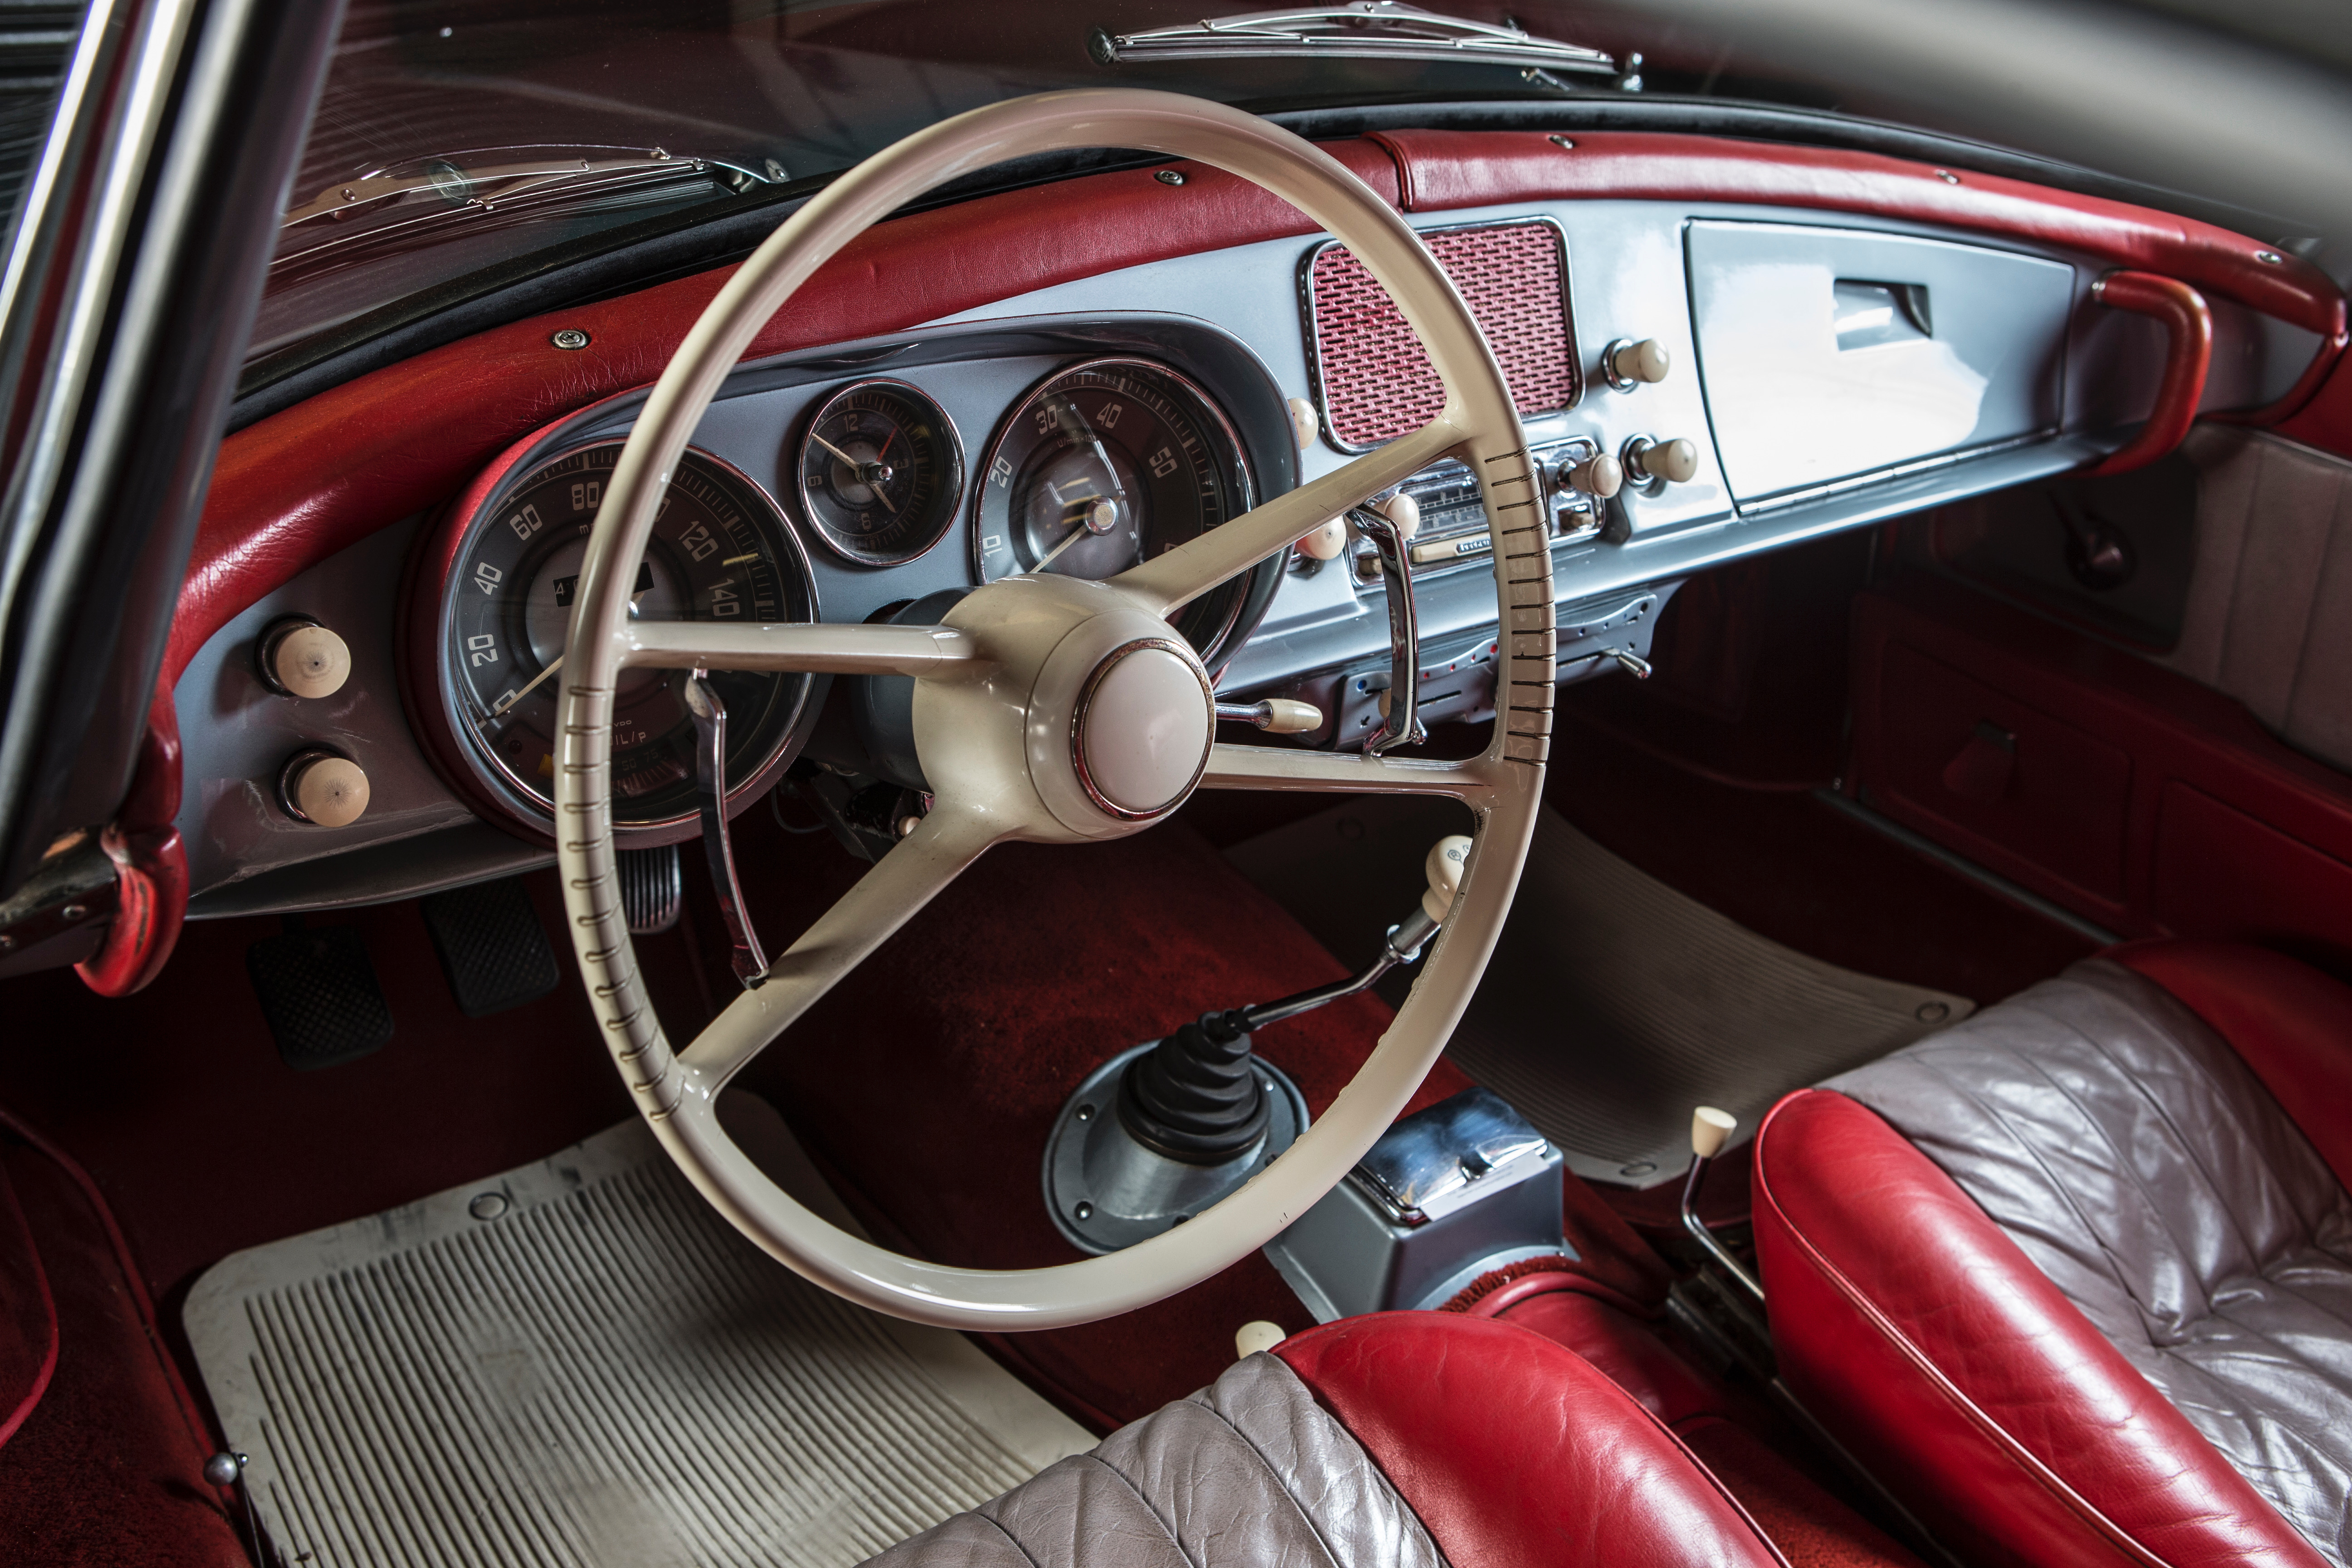 BMW 507, Surtees' BMW 507 going to auction, ClassicCars.com Journal